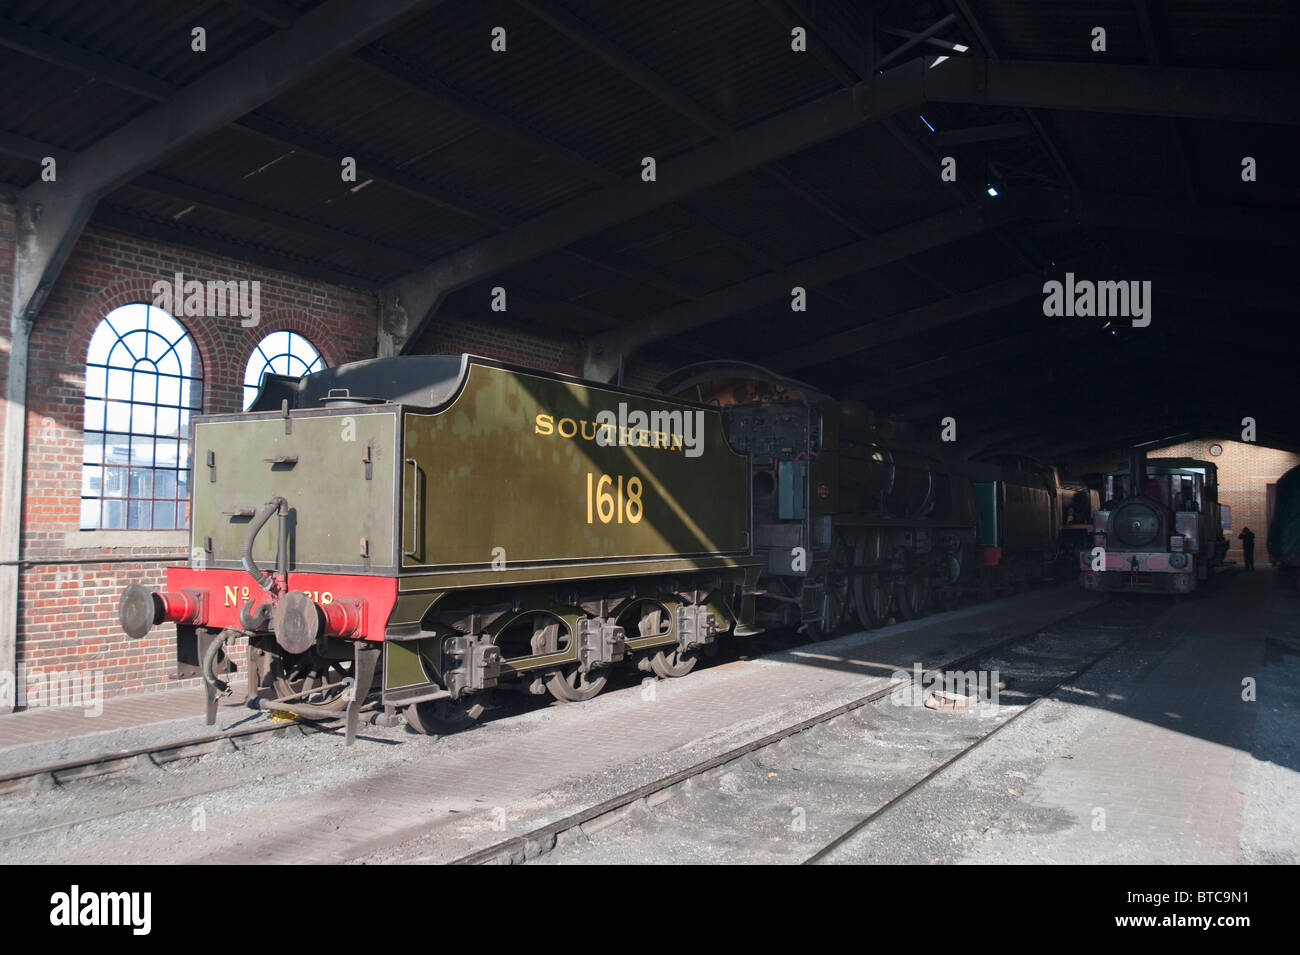 SR Maunsell U-Class Steam Locomotive, No 1618, Engine Shed, Sheffield Park, Bluebell Railway, Sussex, England - Stock Image